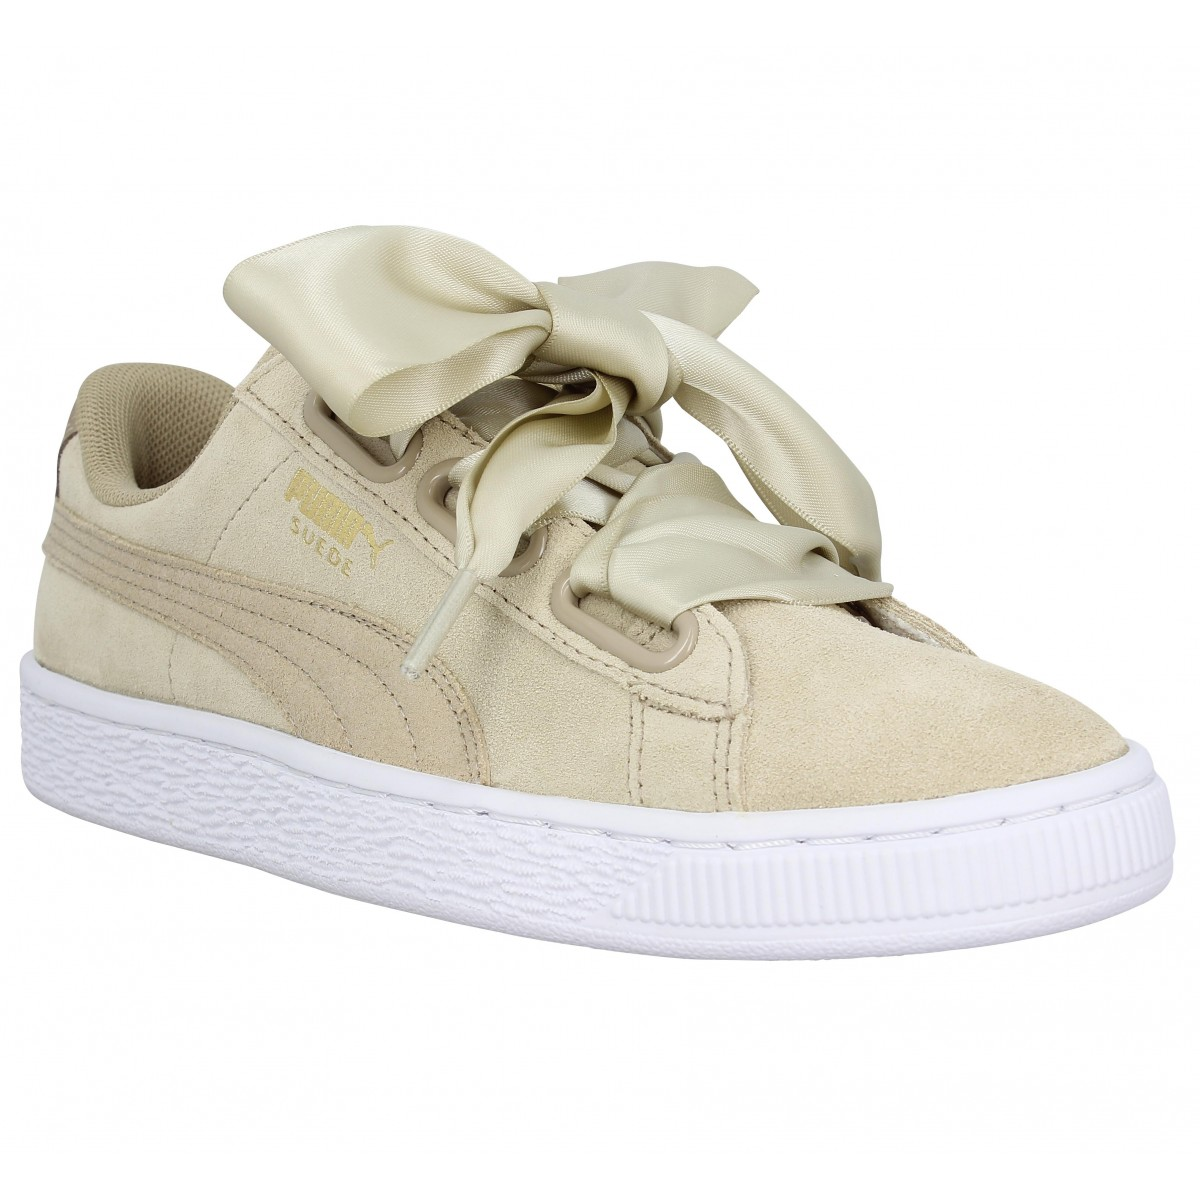 Baskets PUMA Basket Heart Safari velours Femme Beige